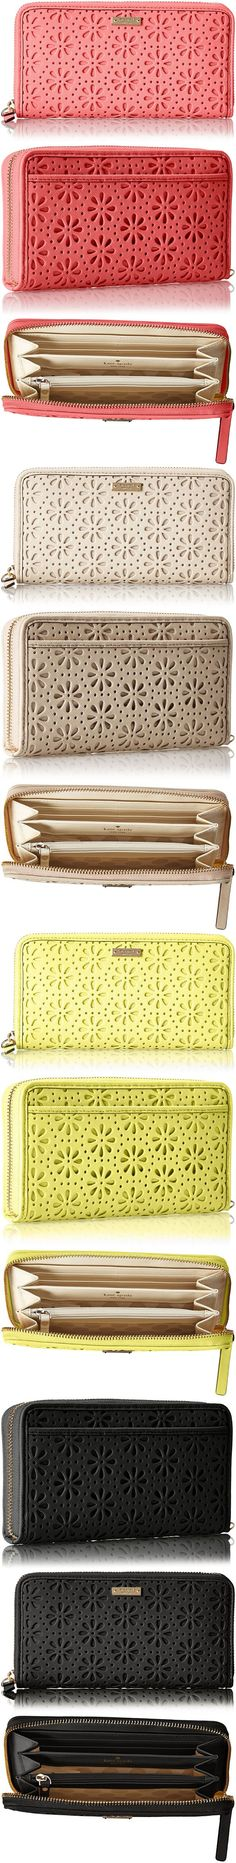 kate spade new york Cedar Street Perforated Lacey Wallet